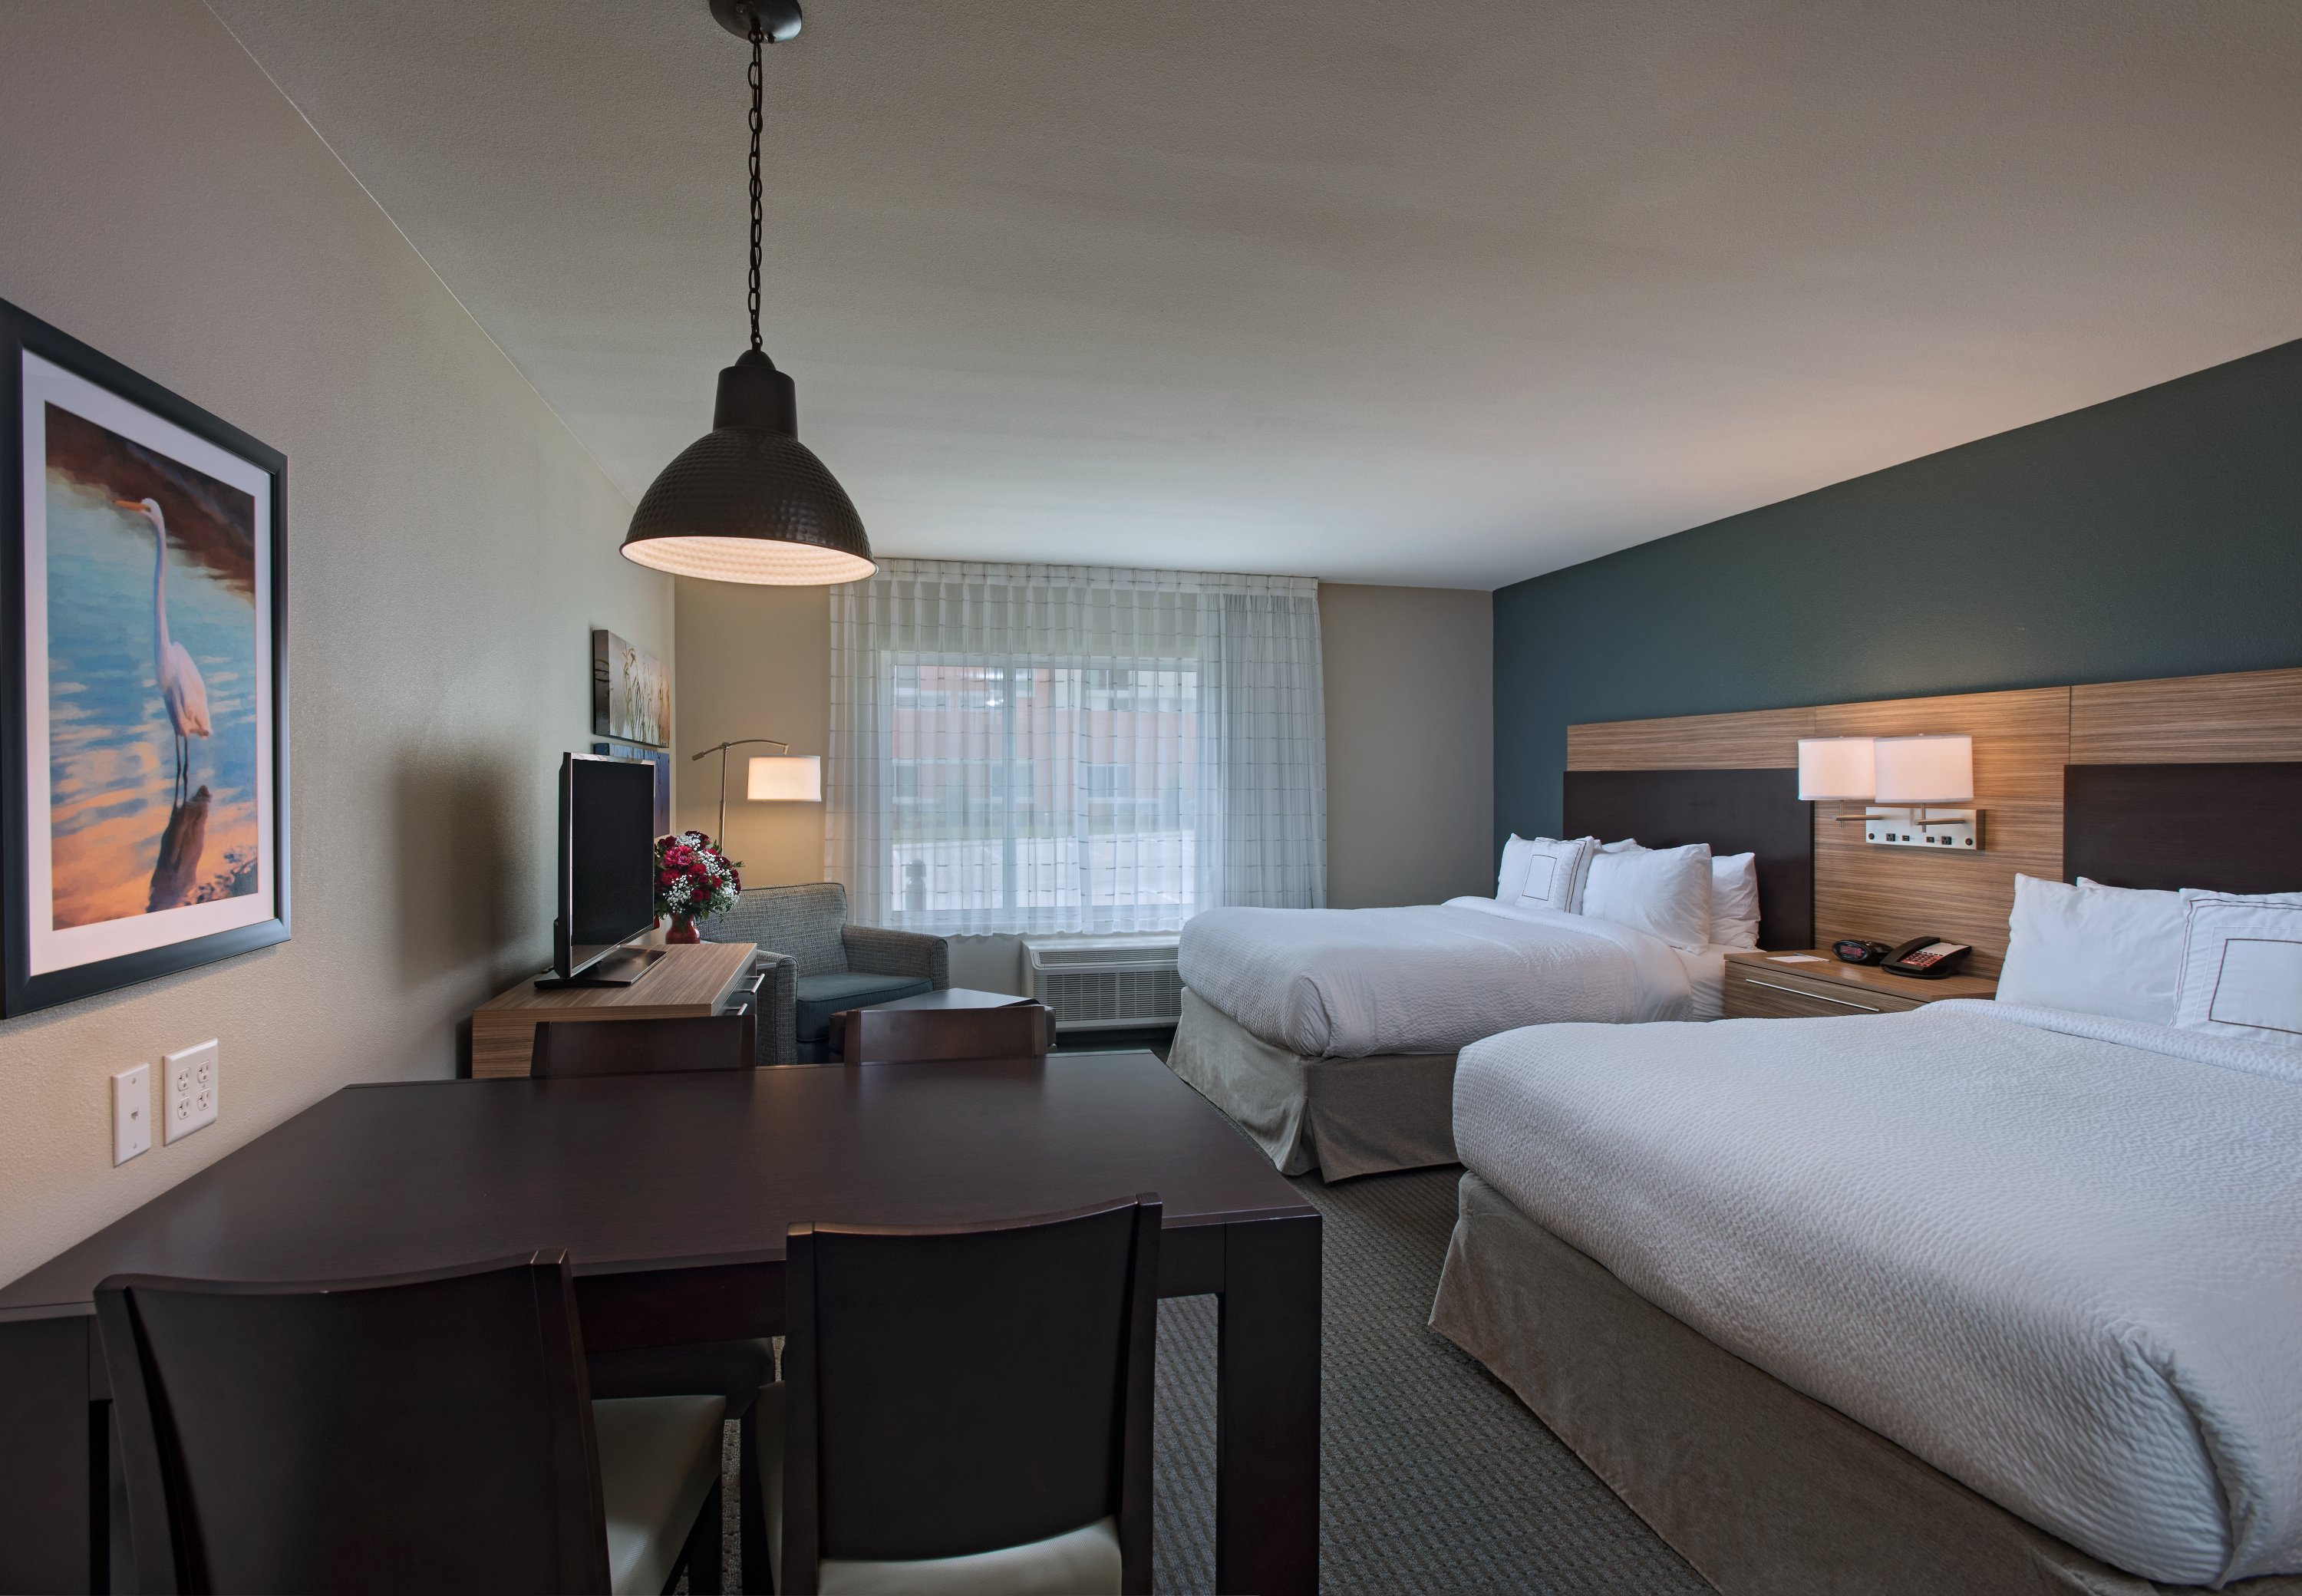 TownePlace Suites by Marriott Lake Charles image 4